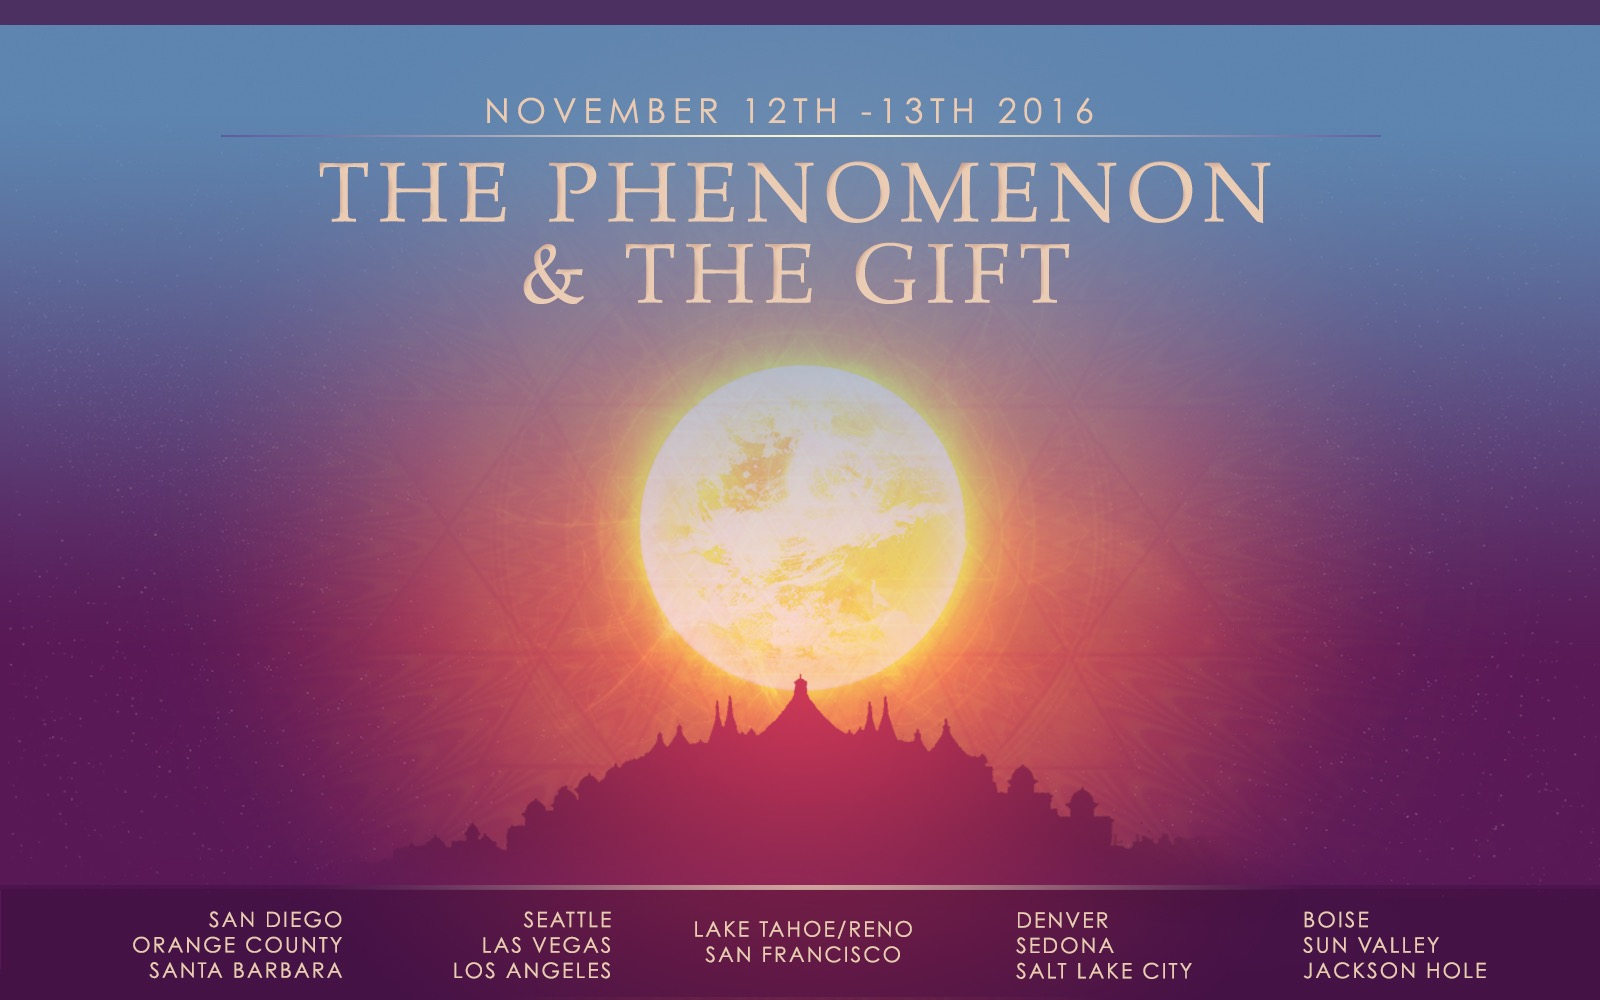 Tickets for The Phenomenon & The Gift - Los Angeles in Malibu from BrightStar Live Events